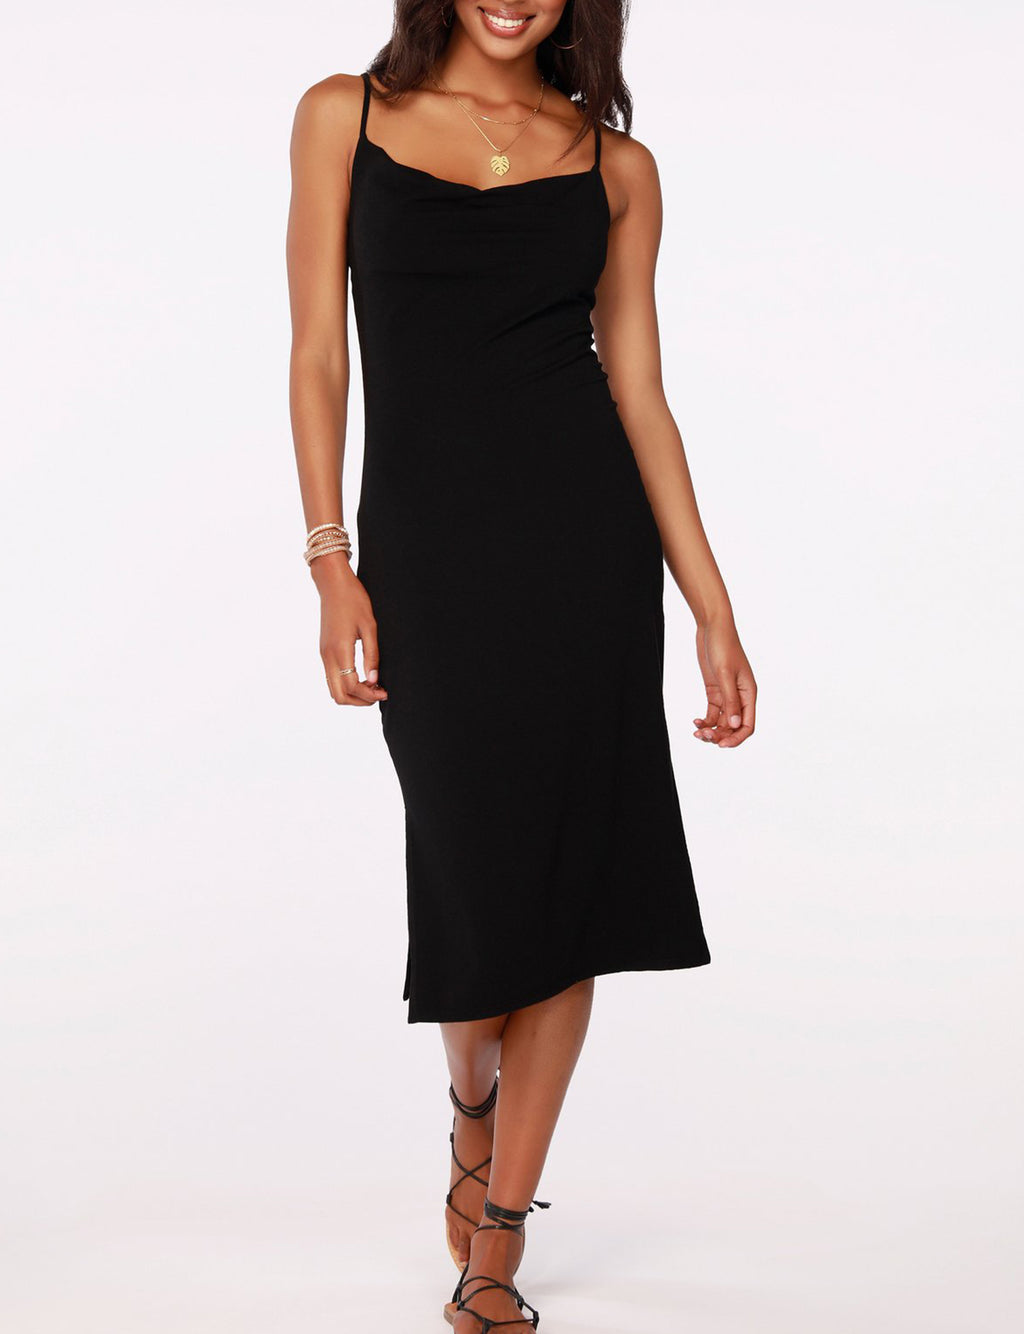 Cowl Neck Dress in Black